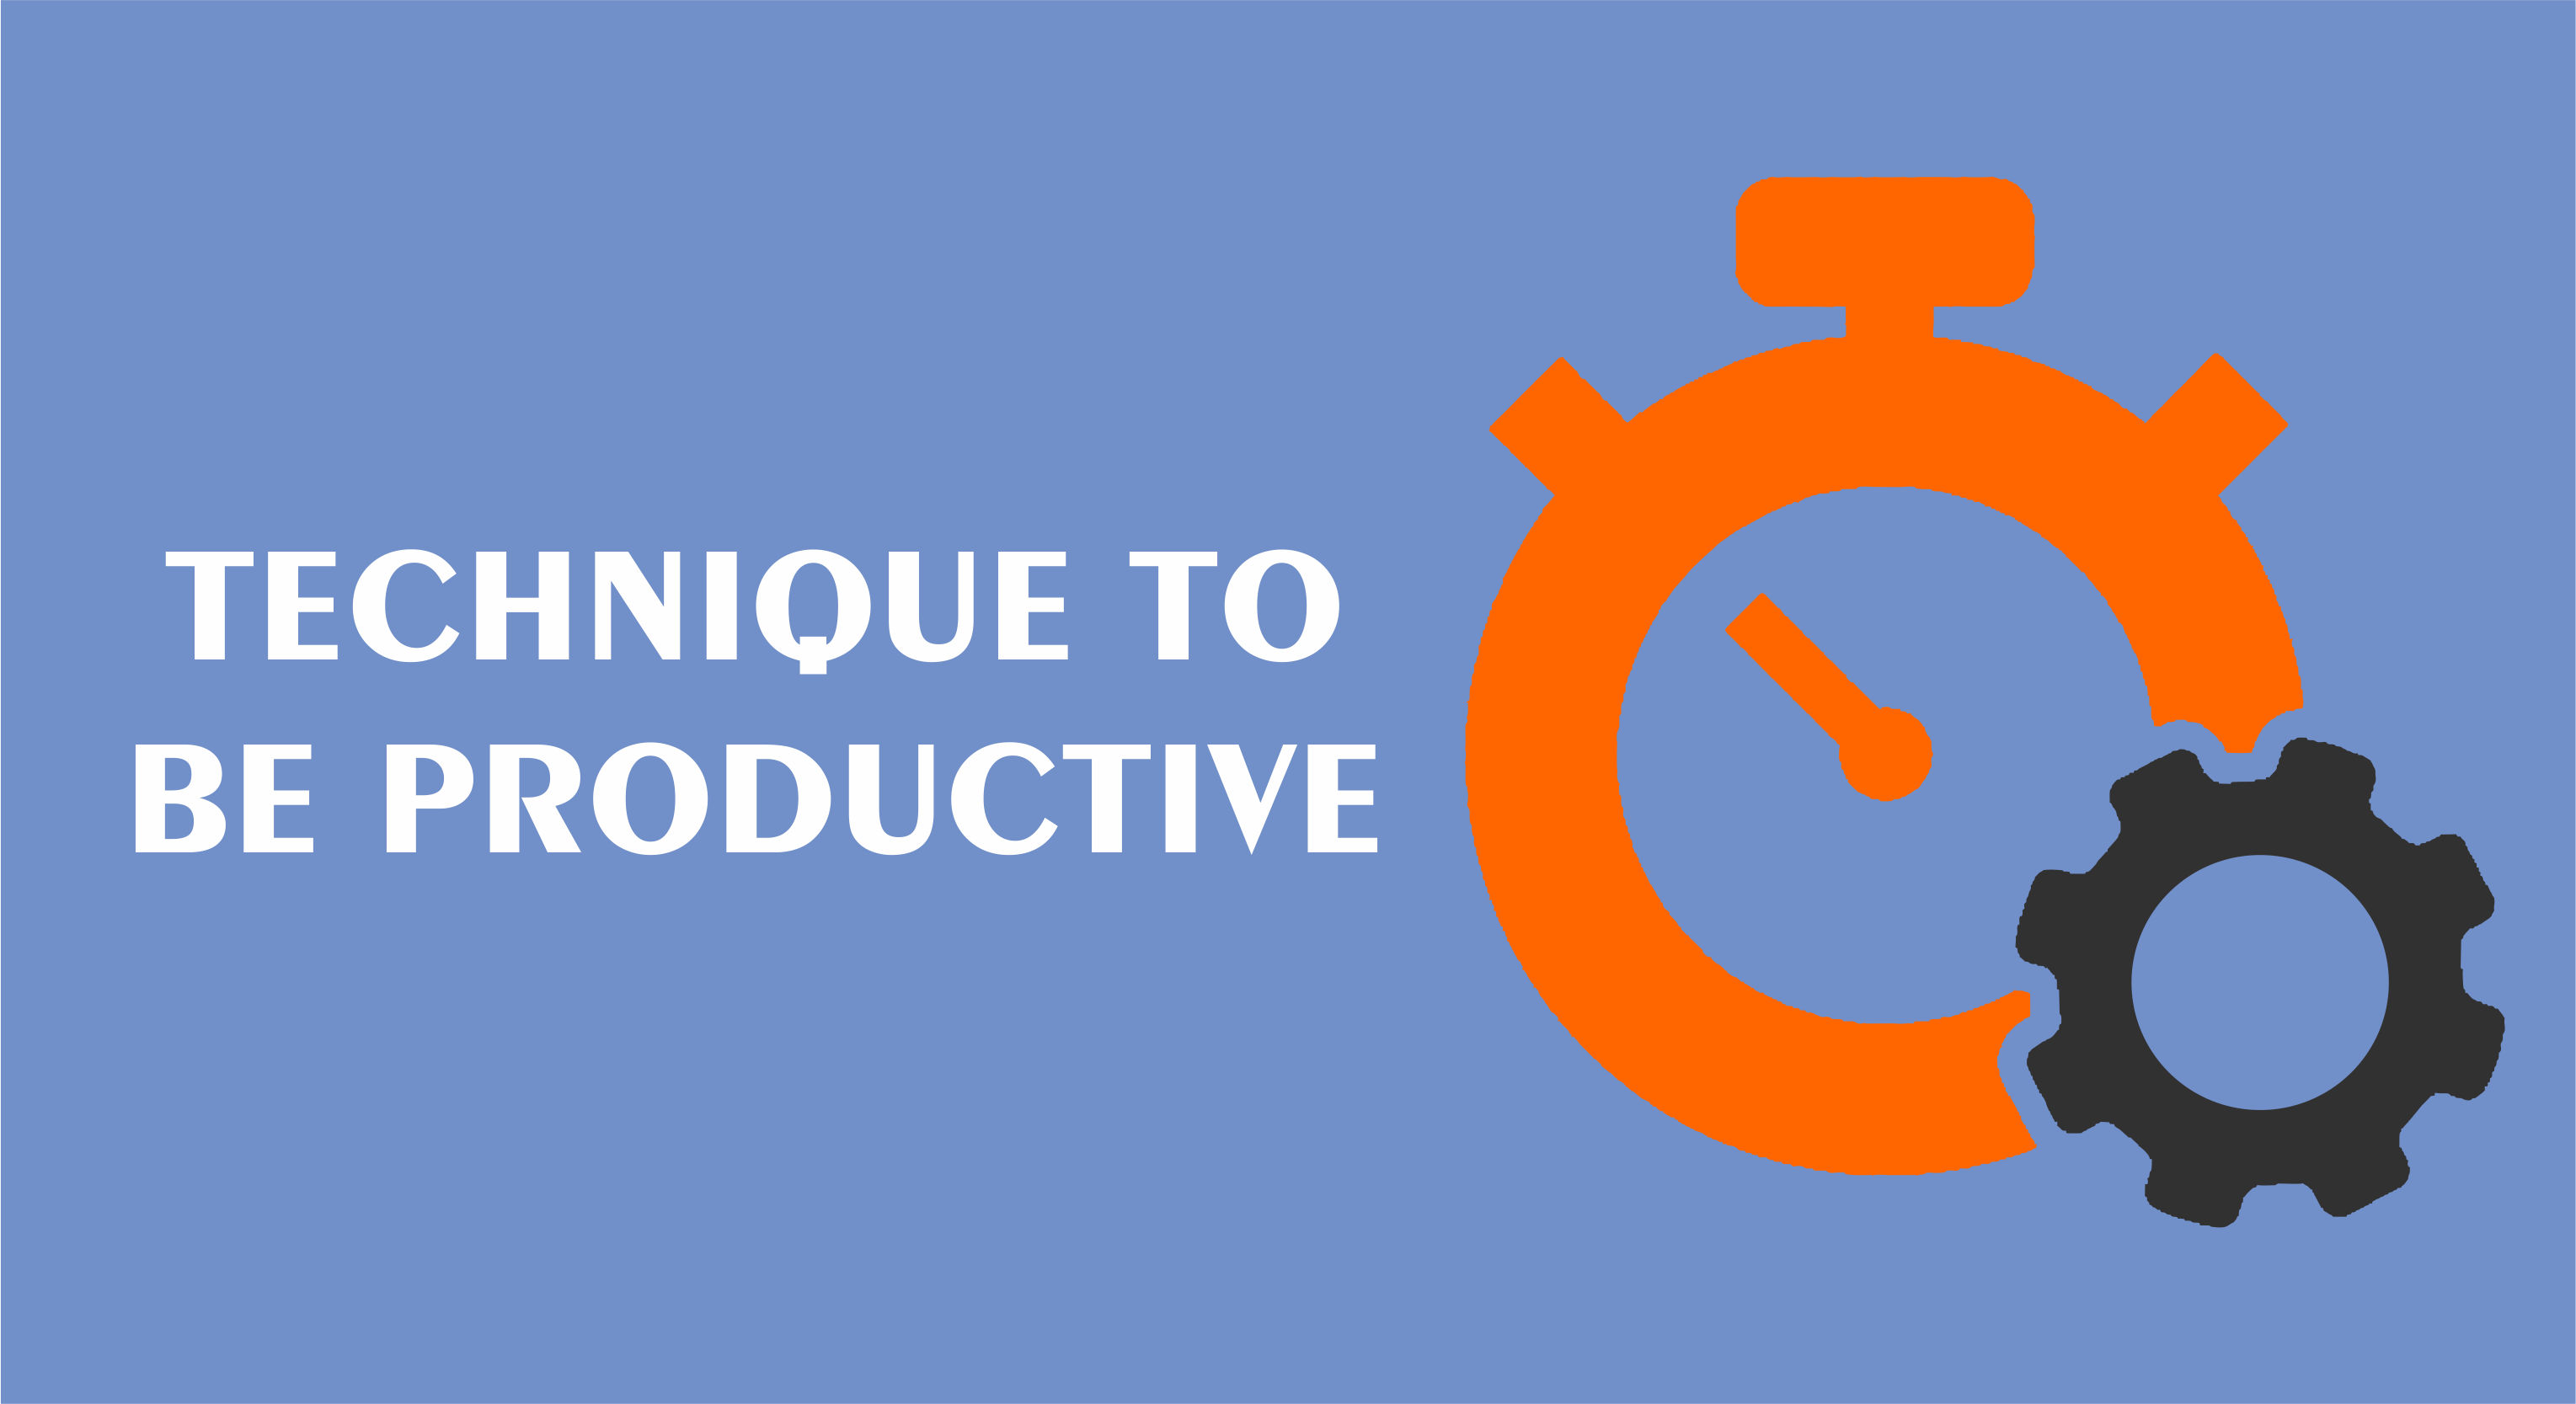 Technique to Be Productive